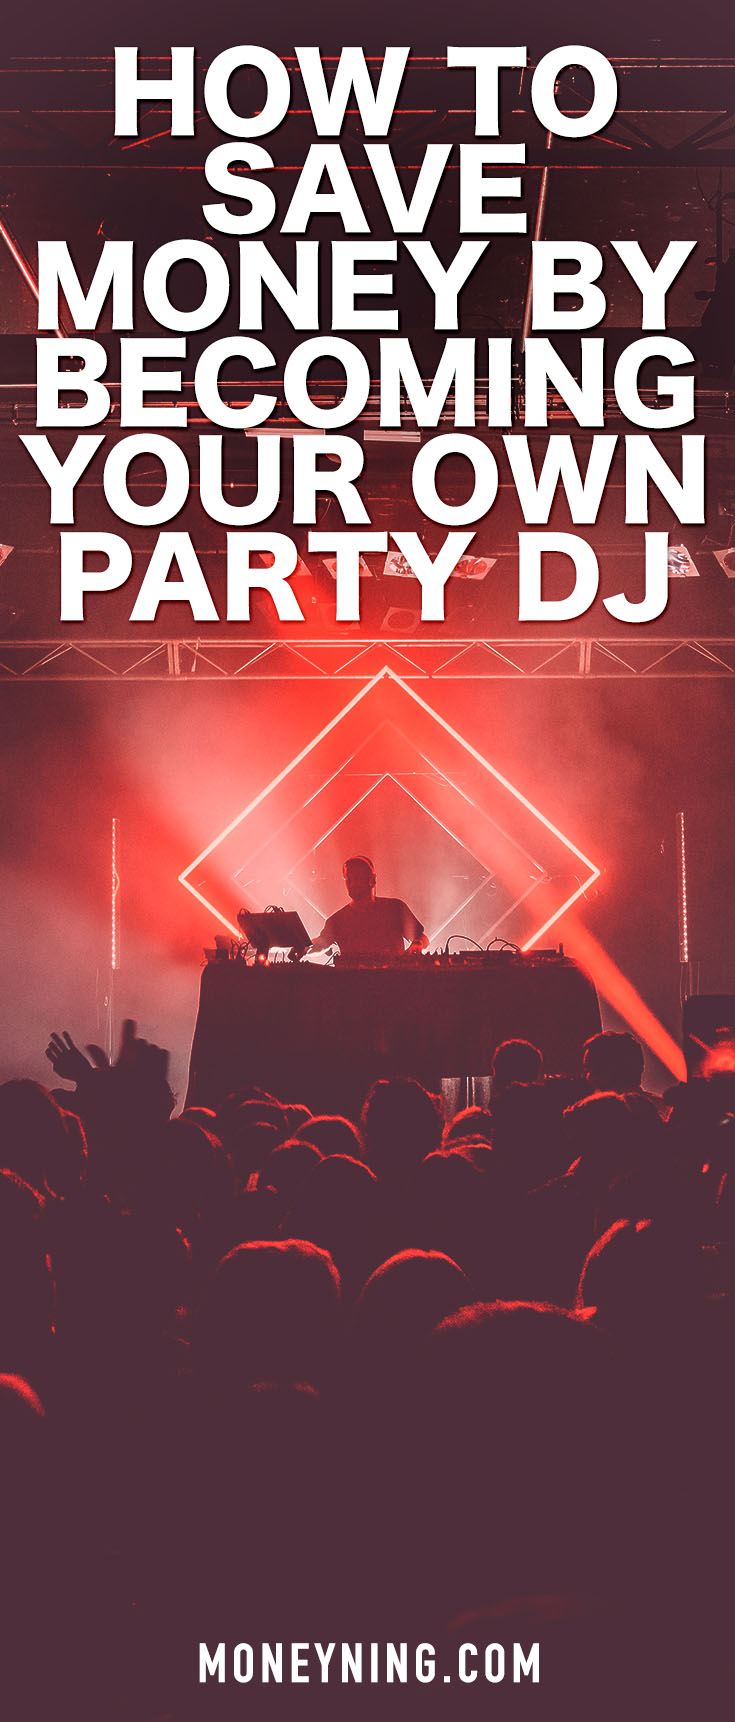 How to Save Hundreds of Dollars By Being Your Own Party DJ